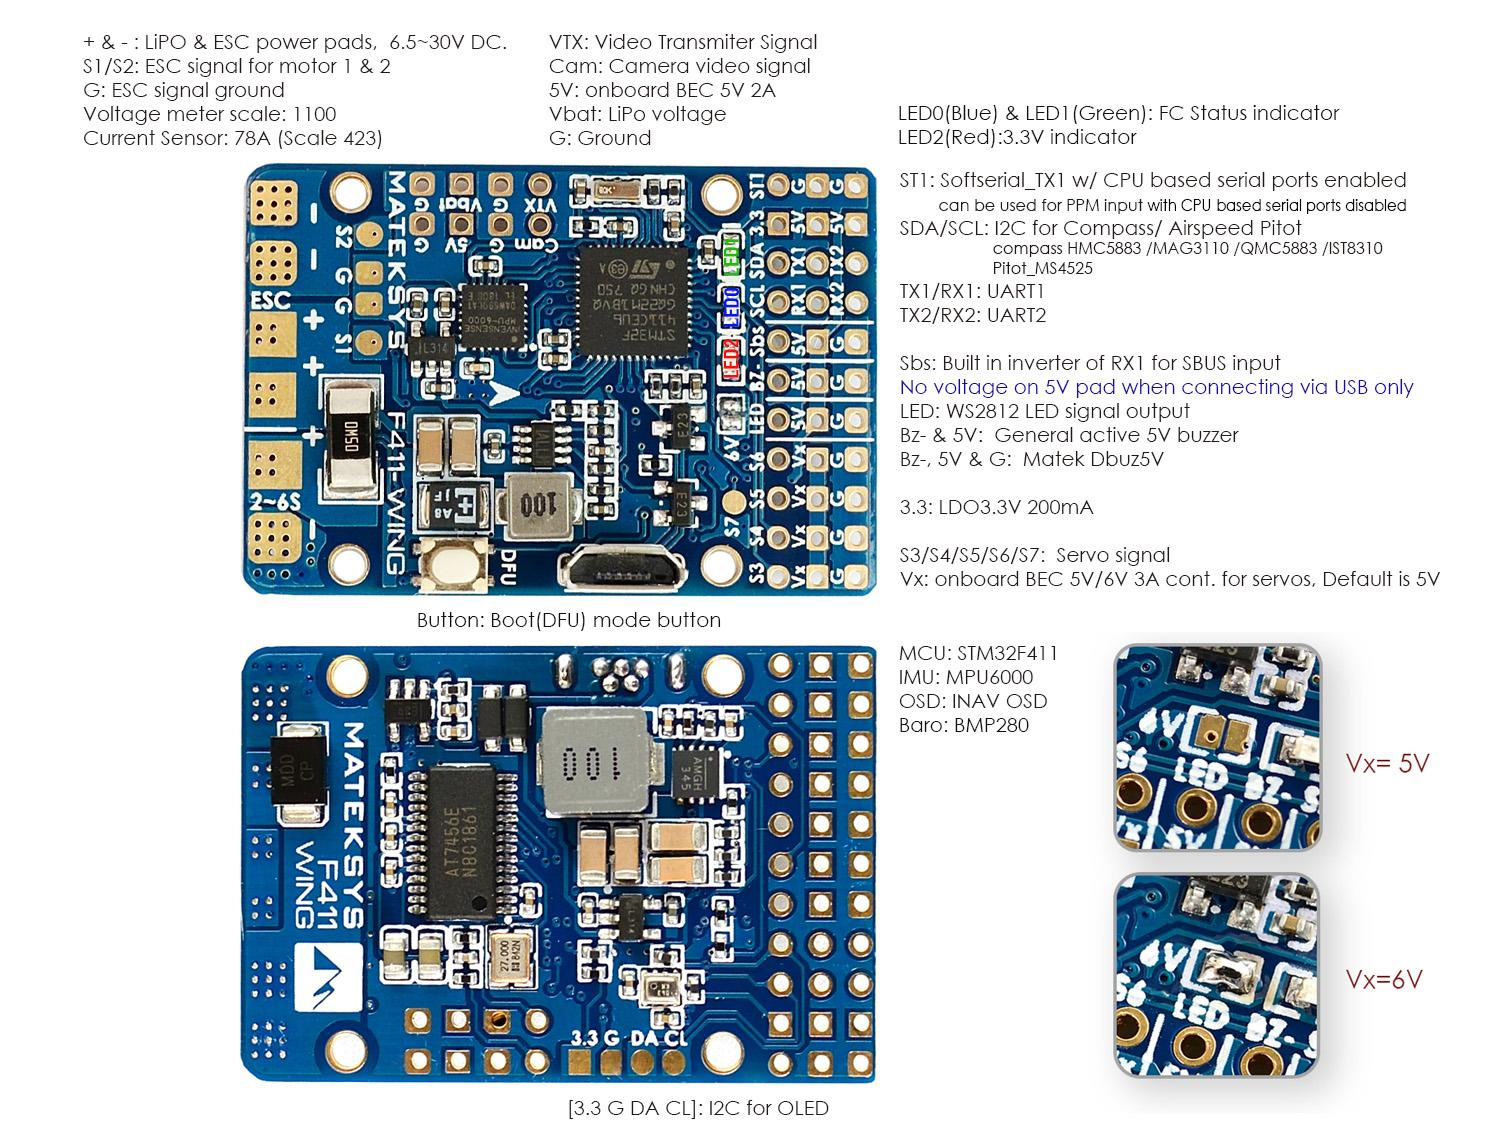 Outputs for the F411 wing fc